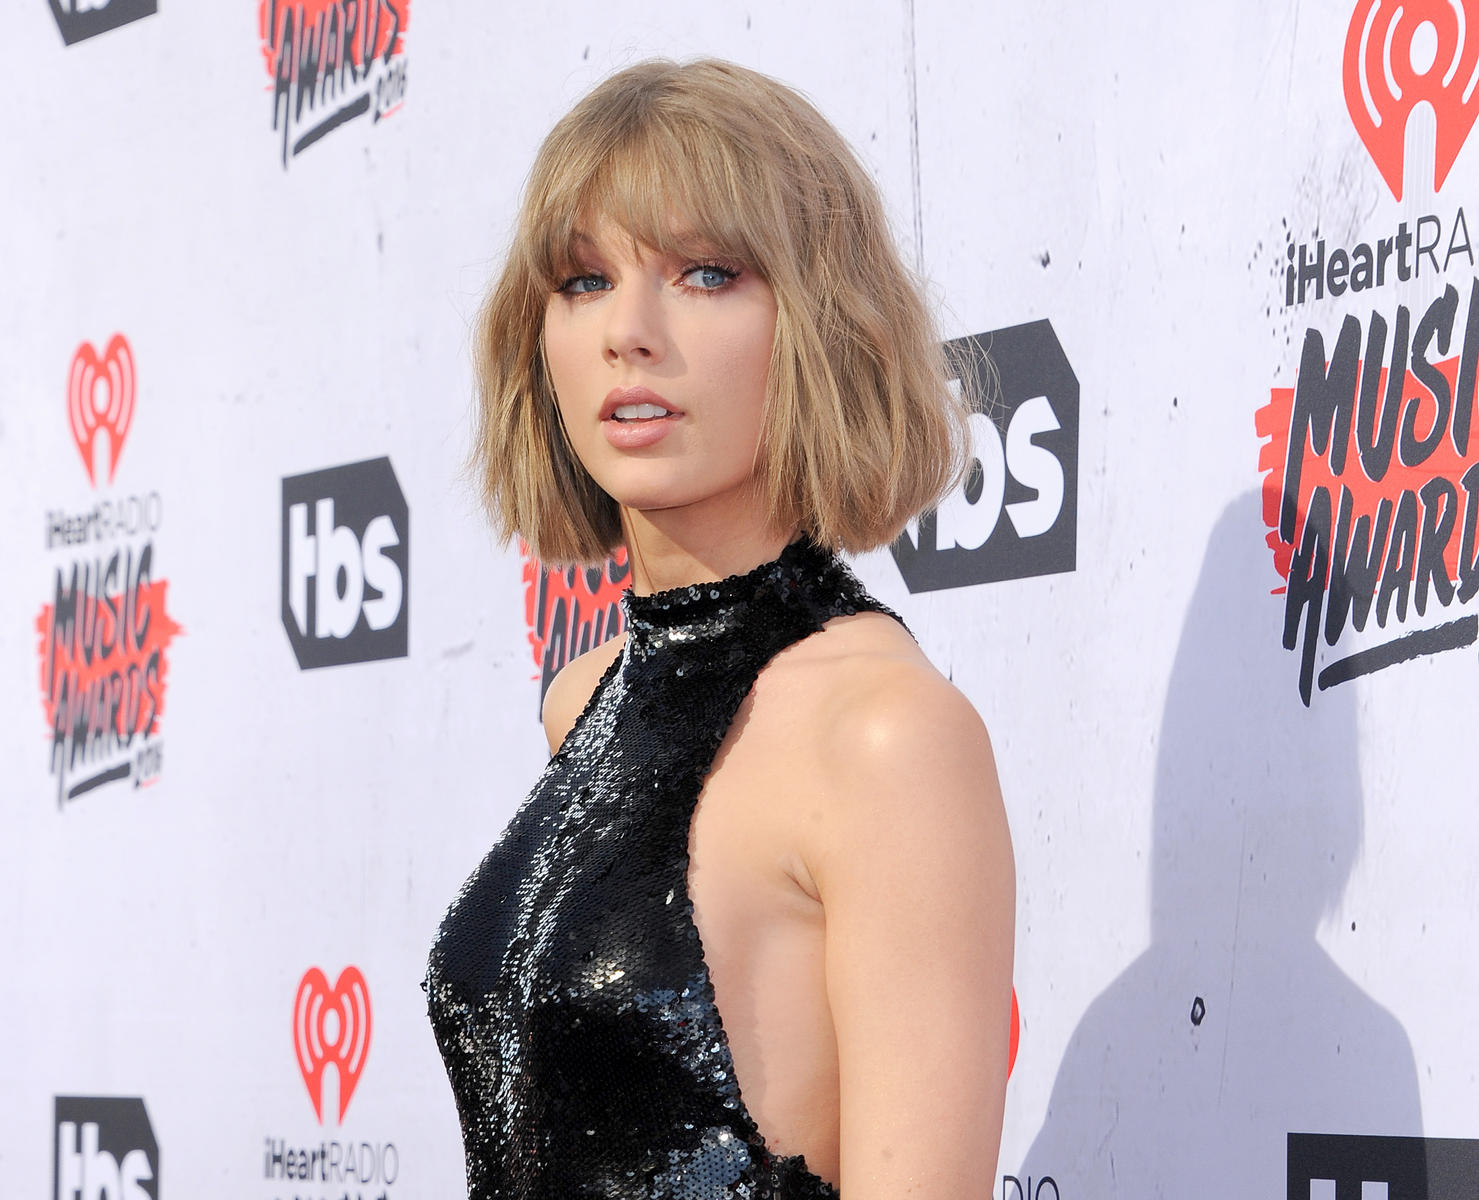 Taylor Swift Treats Arizona Foster Kids to Private Concert & Pizza Party 'They'll Never Forget'